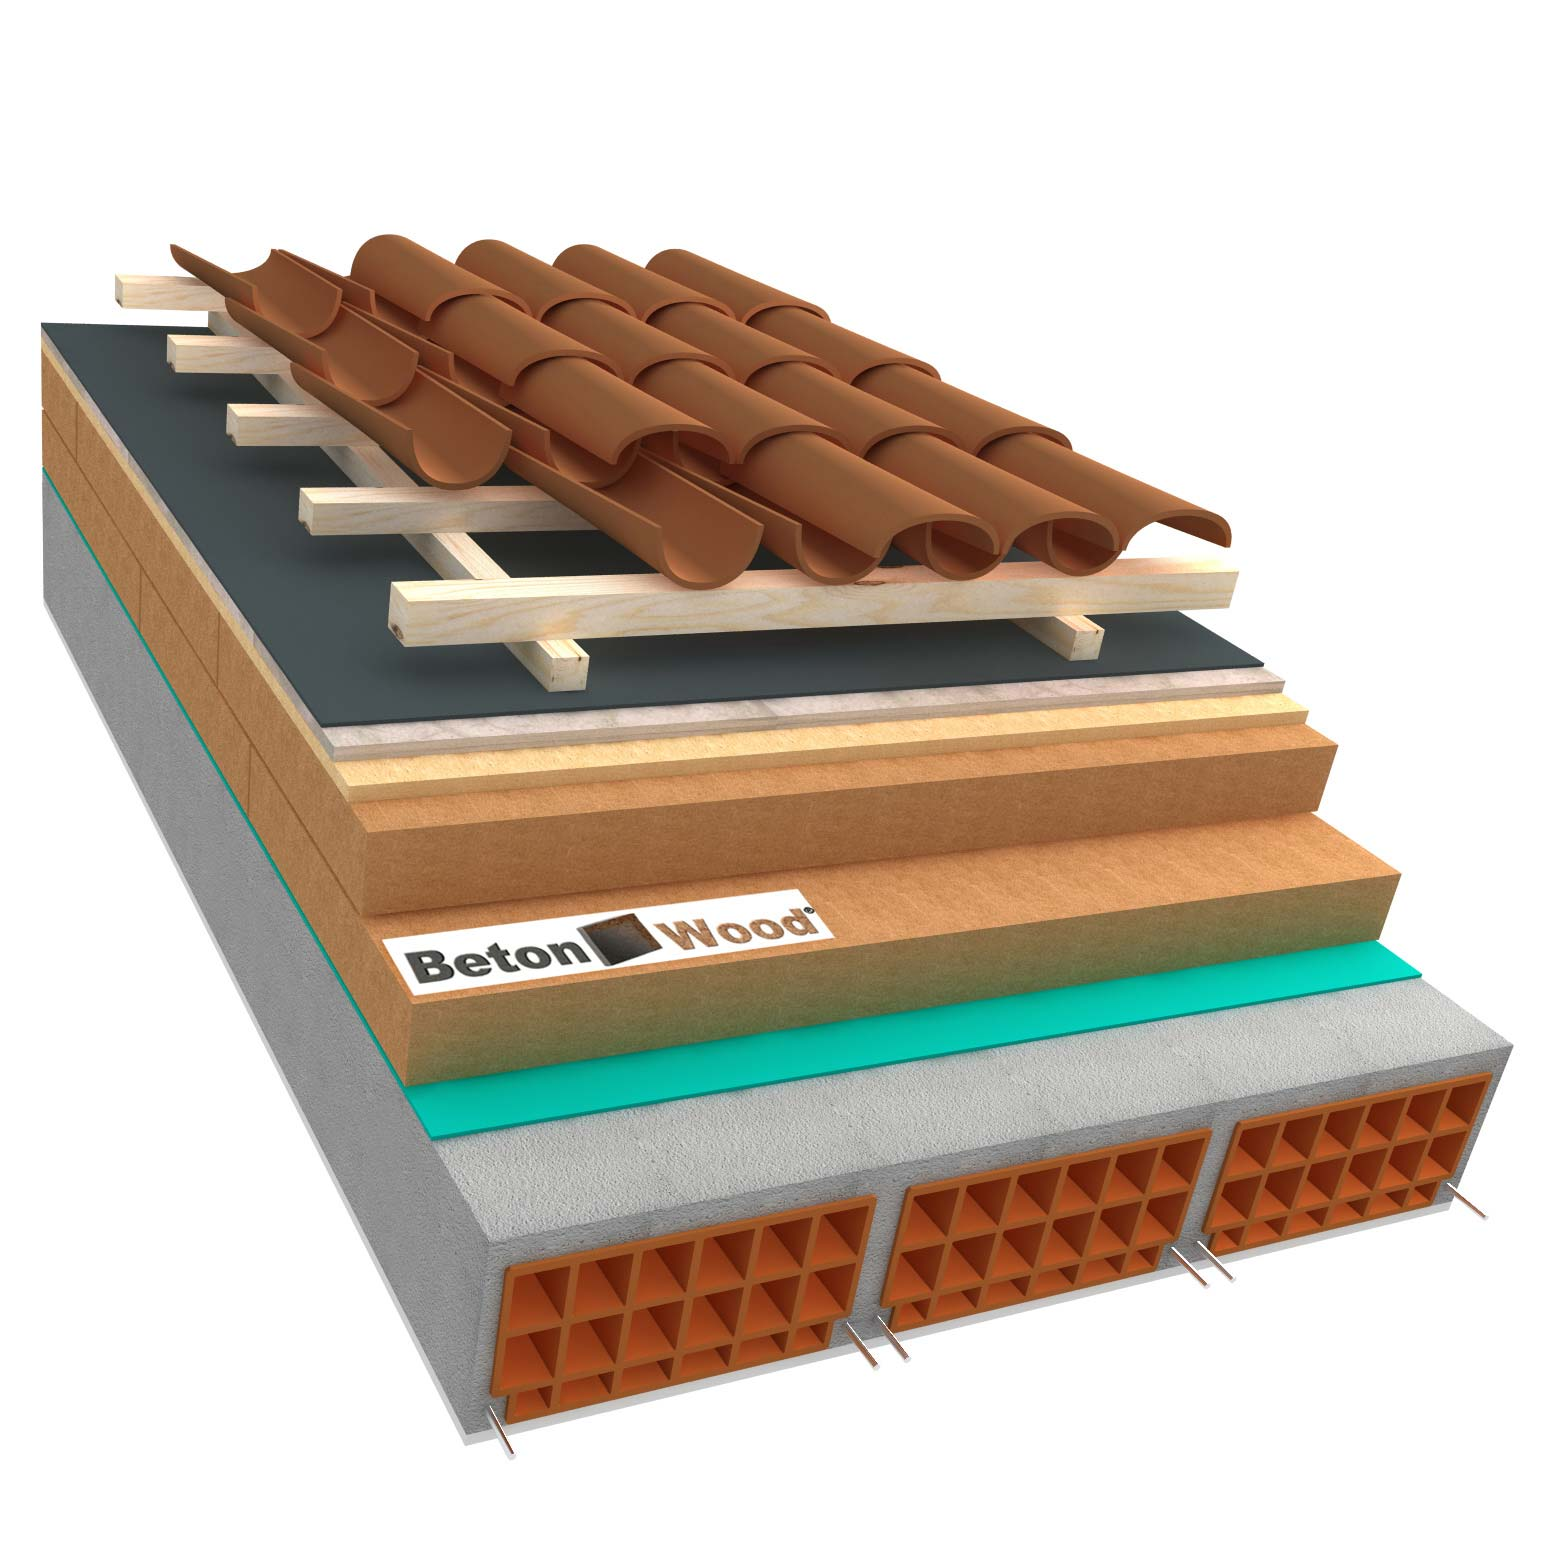 Ventilated roof with wood fibre board Isorel, Special and cement bonded particle boards on concrete